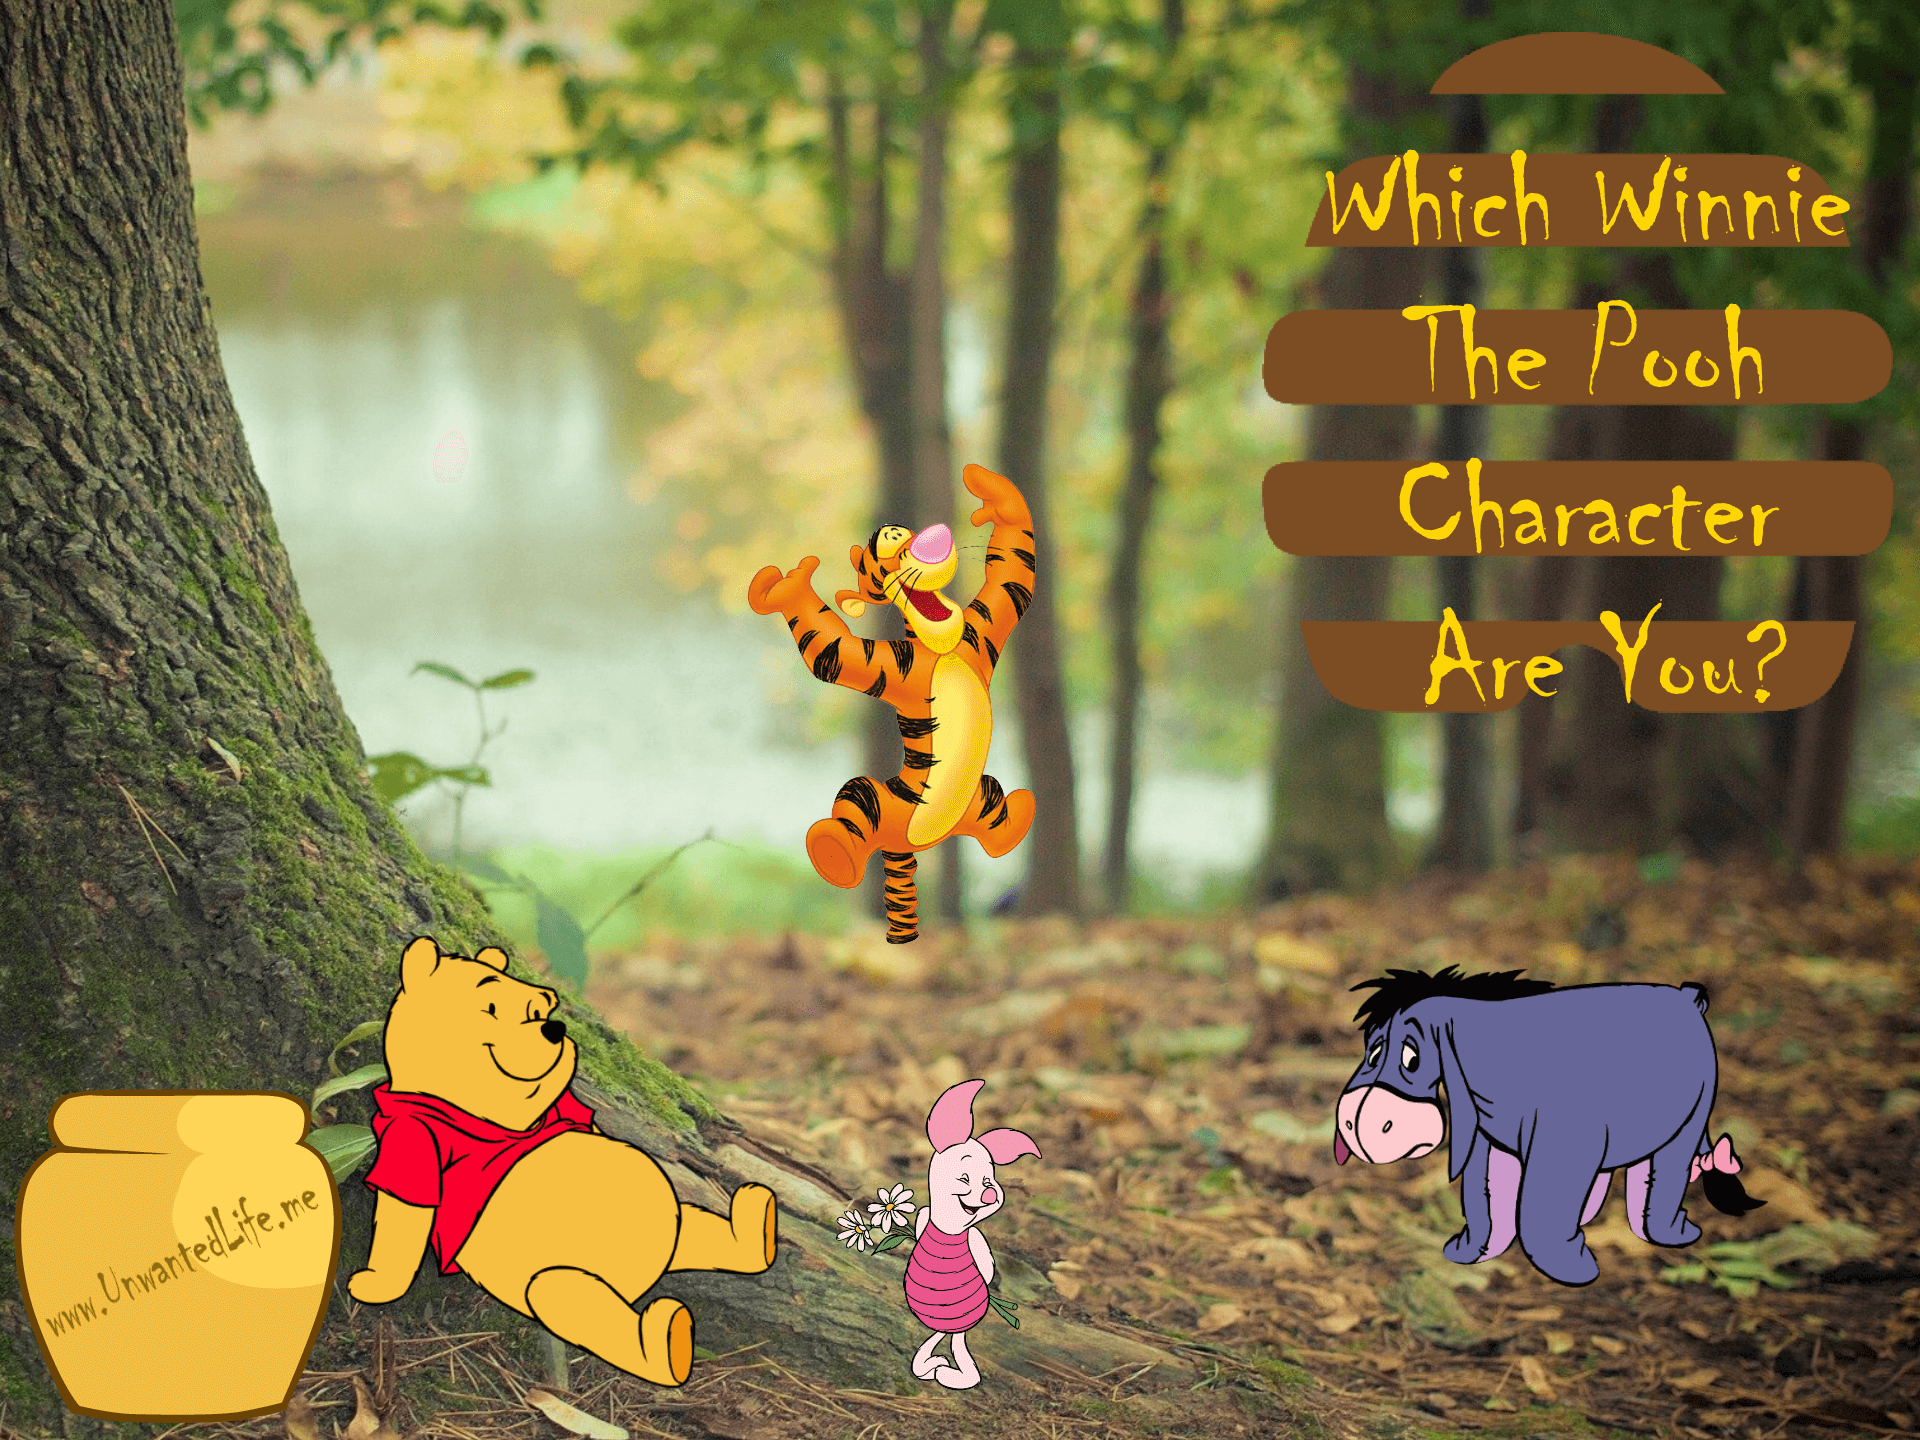 Which Winnie The Pooh Character Are You? | Mental Health and Wellness | Unwanted Life